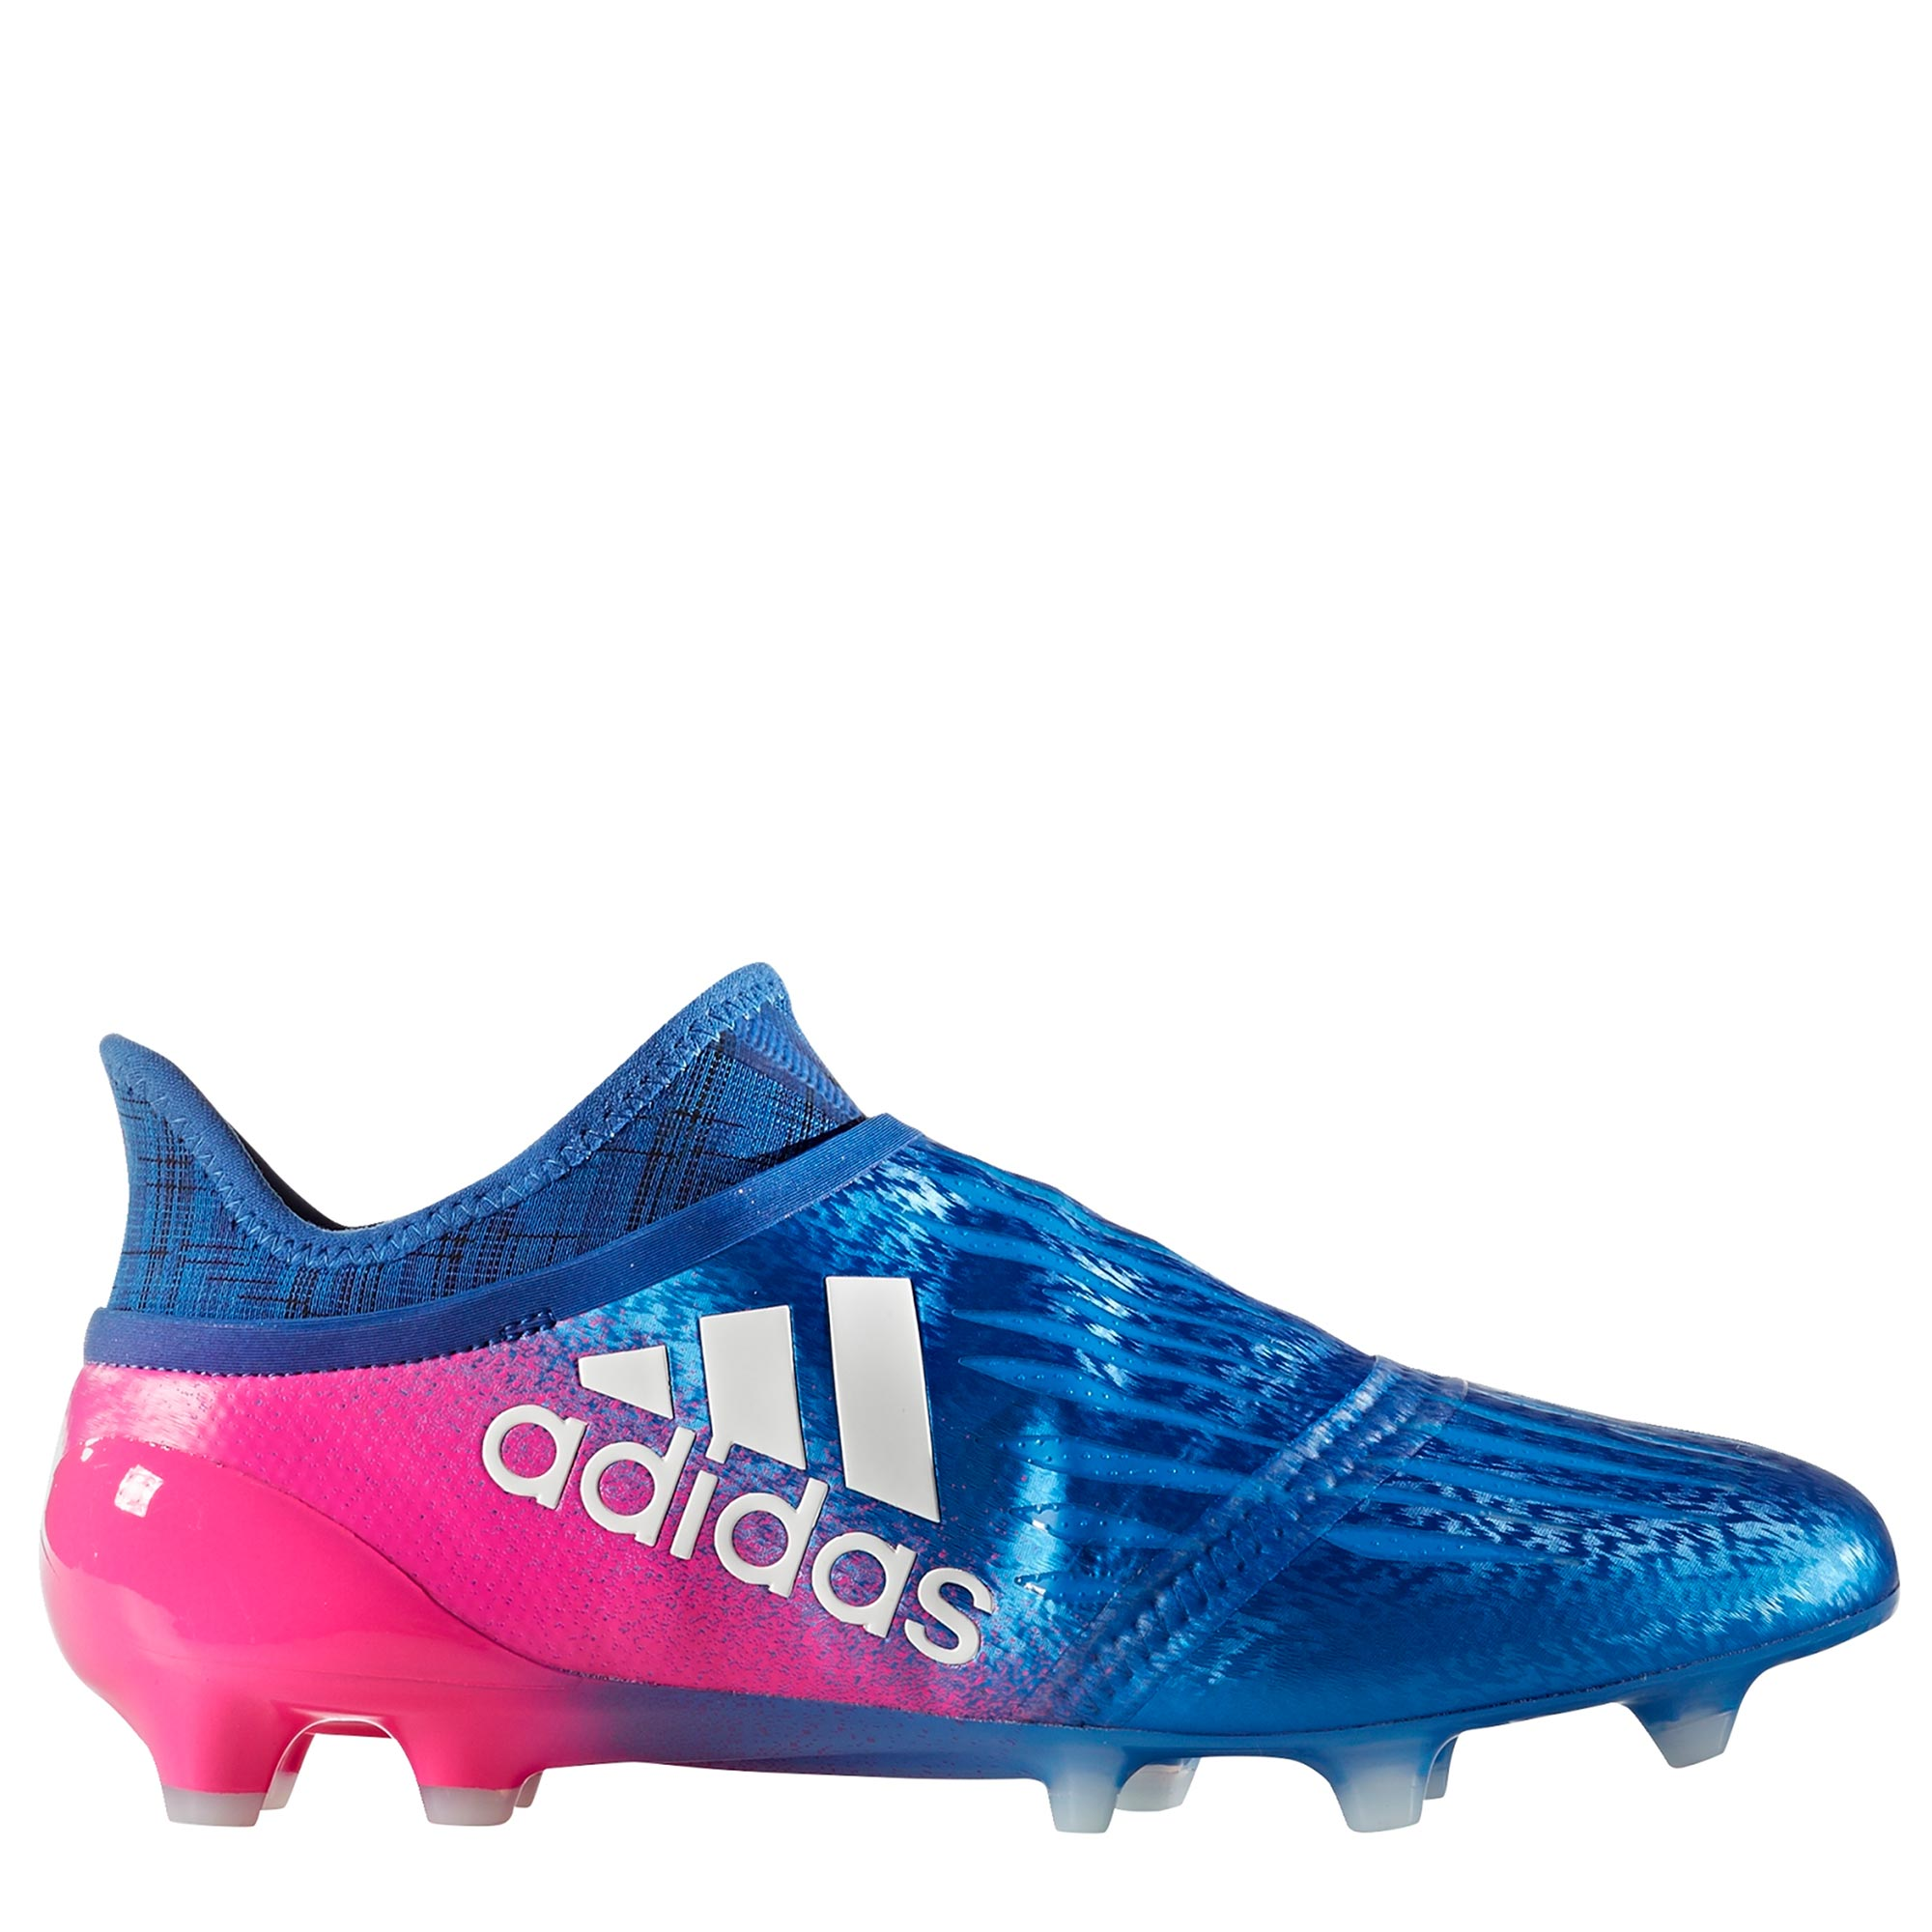 adidas X 16+ PureChaos Firm Ground Football Boots